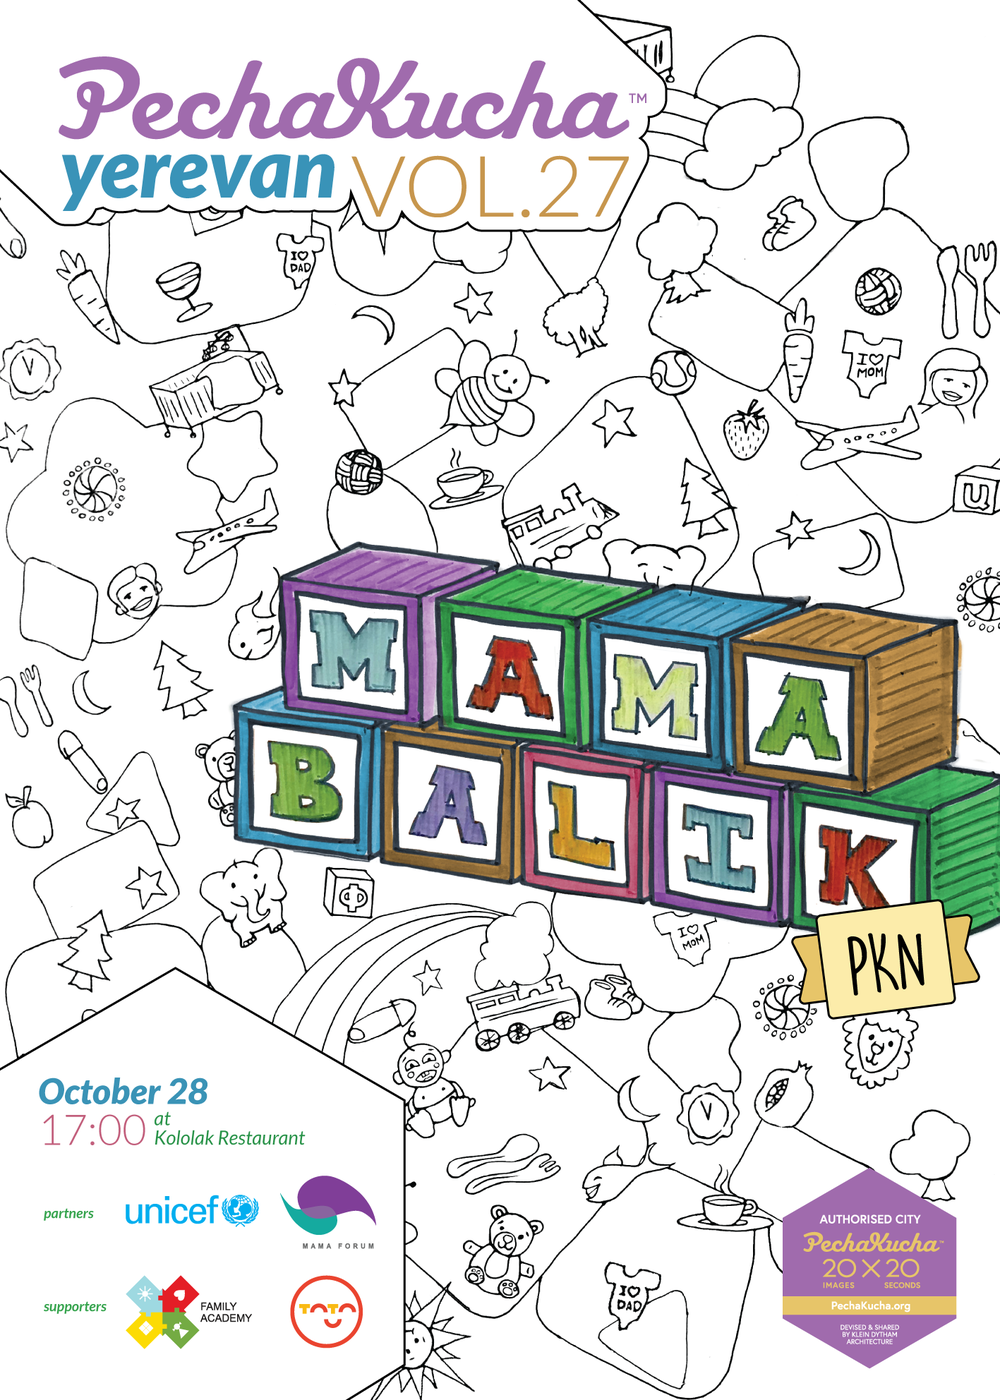 Vol. 27 - MamaBalik PKN - On the 27th edition of PechaKucha Yerevan, we gathered to hear exciting stories on modern parenthood. The event was organised in partnership with UNICEF and MamaForum.Poster by Arsineh Valladian.